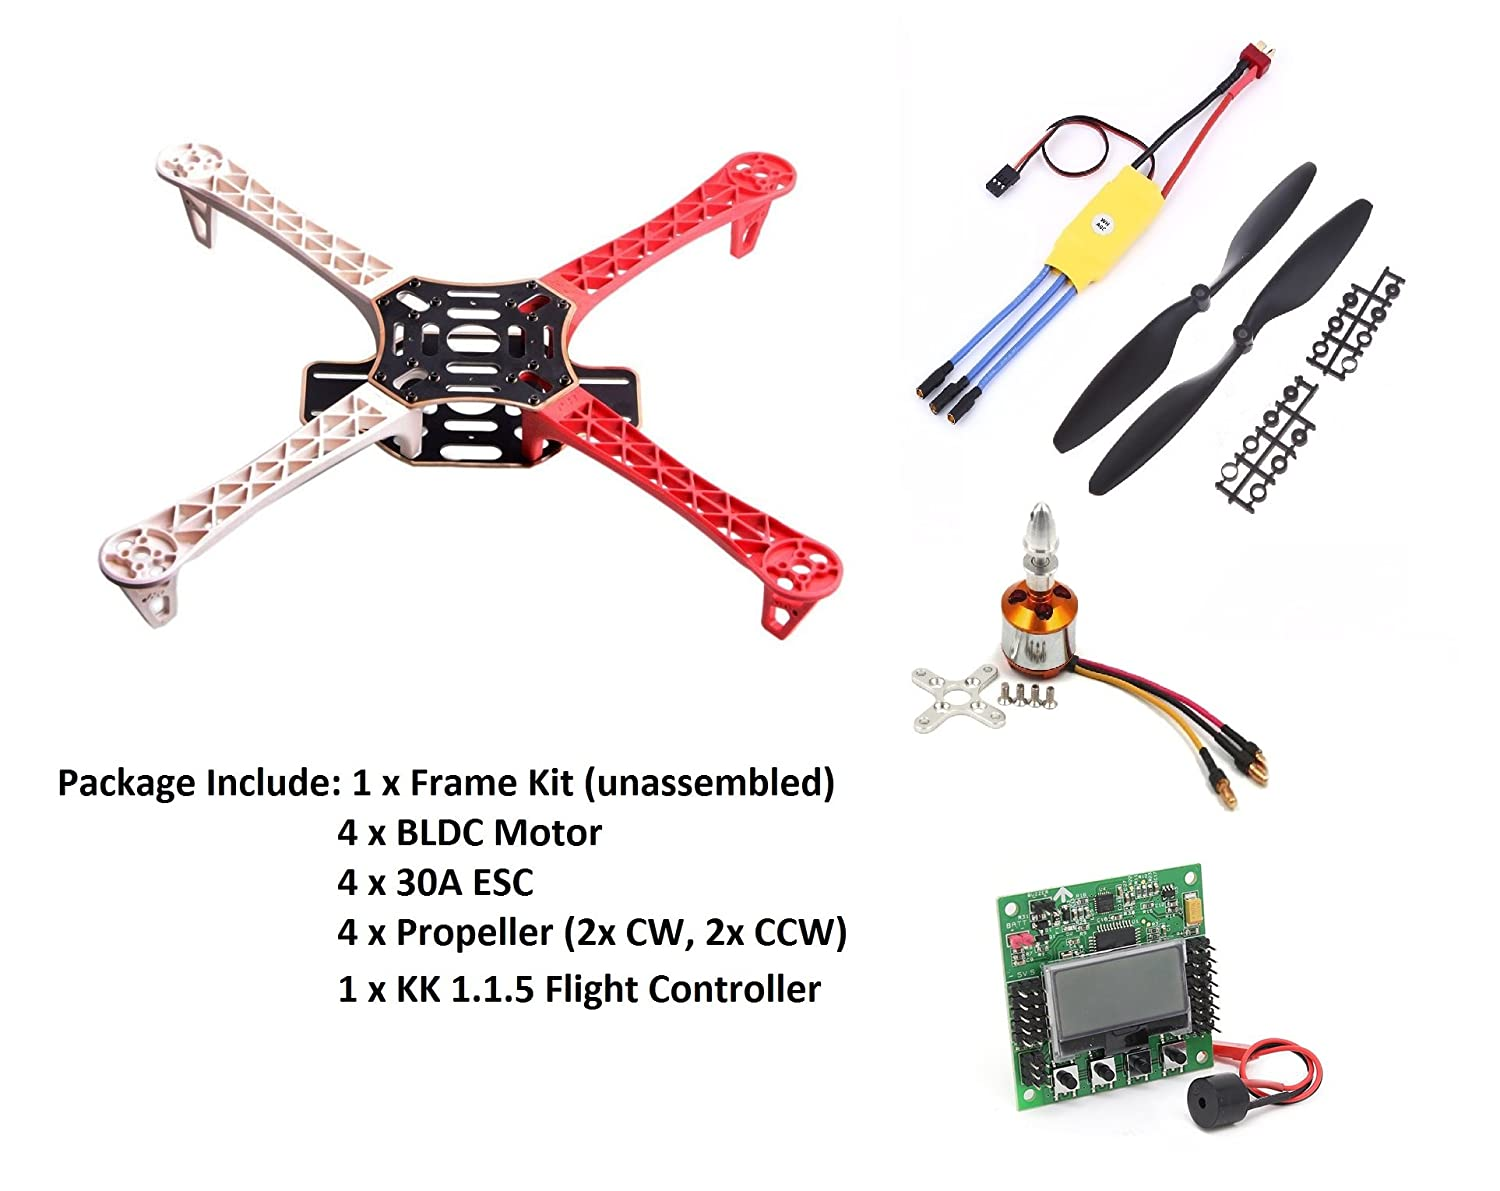 Invento F450 Quadcopter Diy Kit Kk215 Frame 1000kv Bldc Orangerx Kk2 Wiring Diagram 30a Esc 1045 Propellor Industrial Scientific